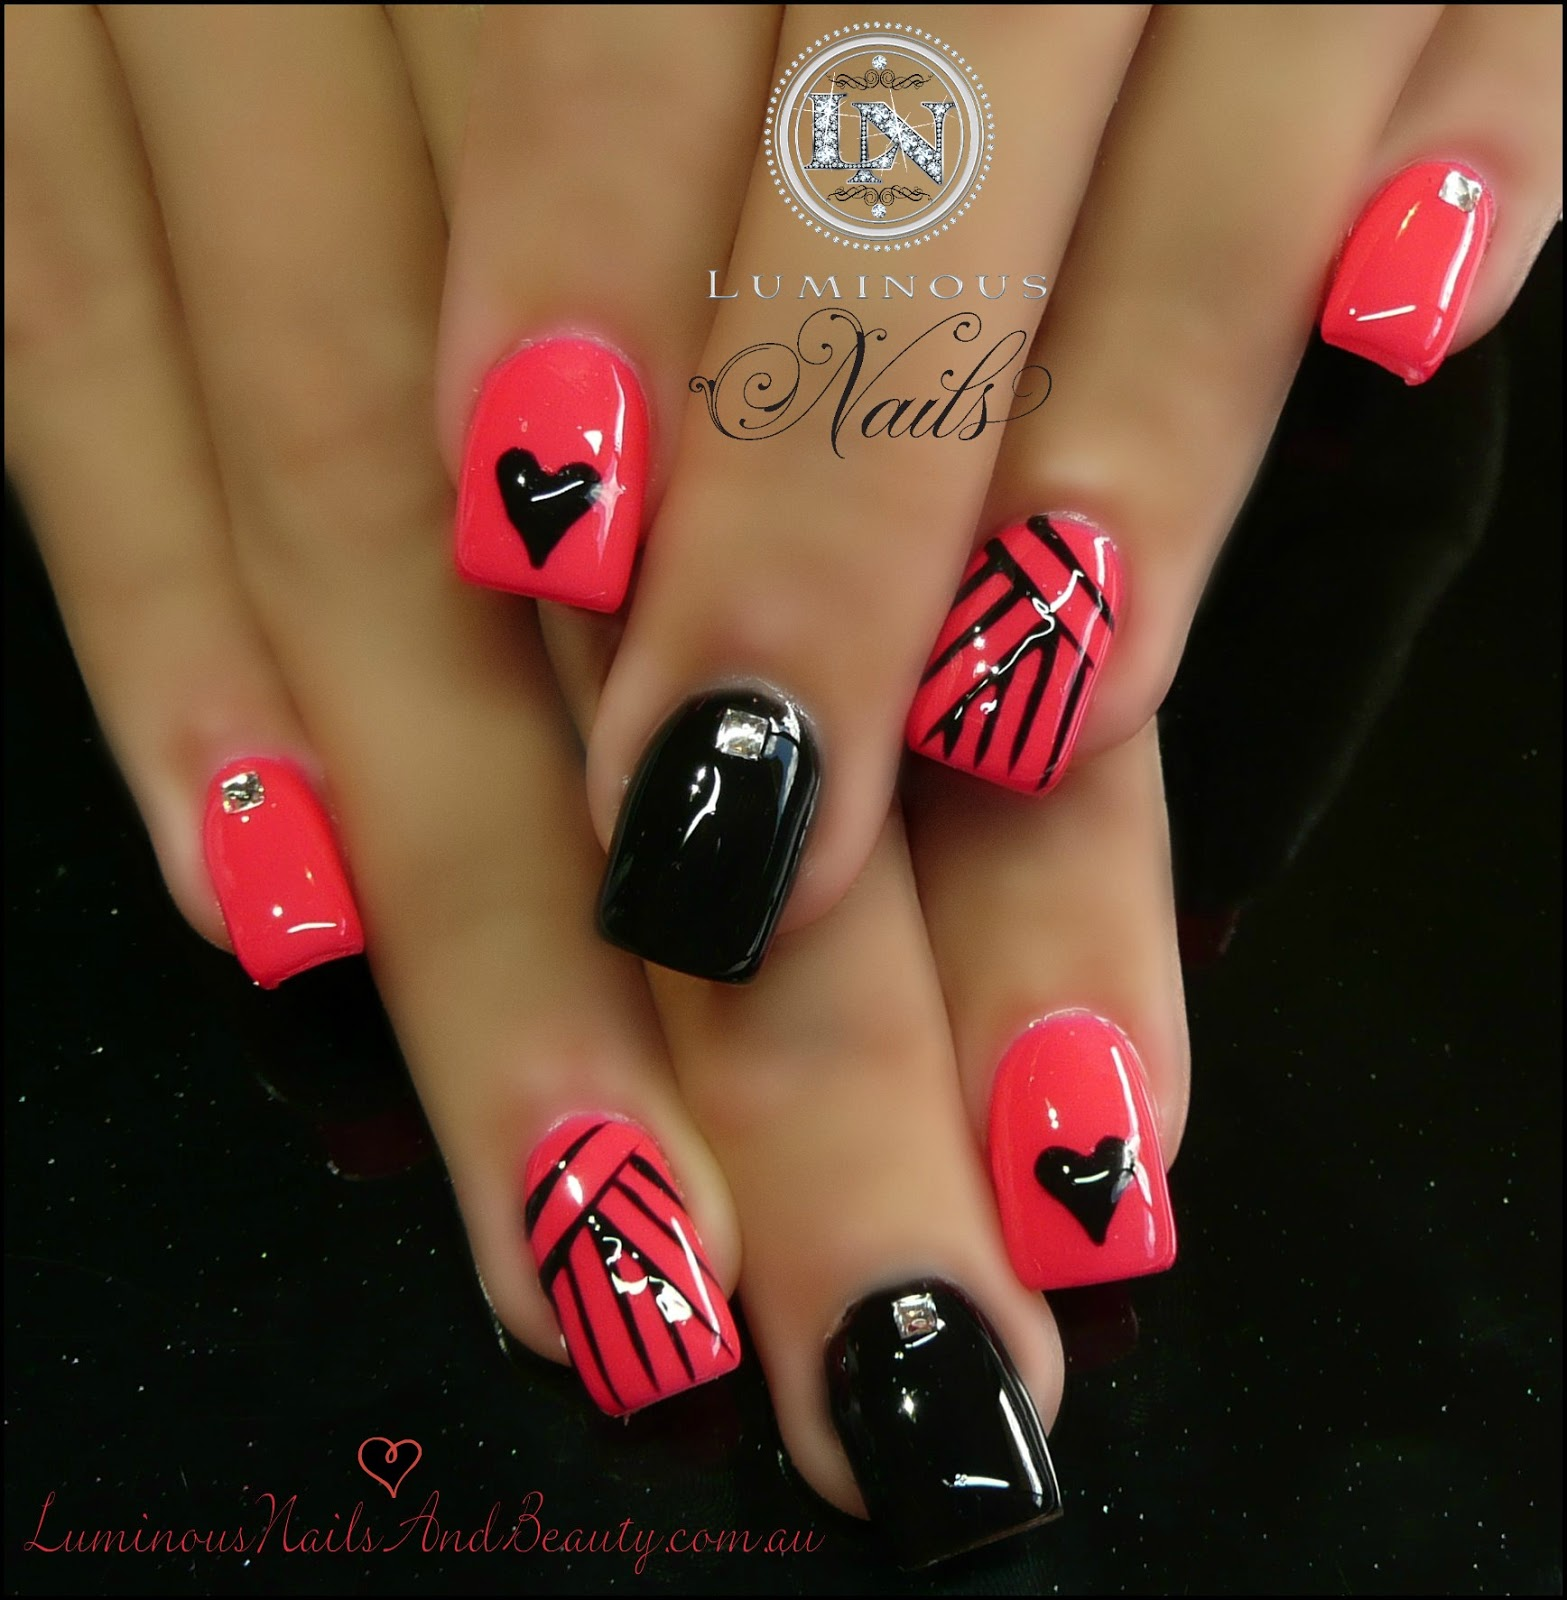 View Images Nails gel sculptured acrylic with mani q black coral pink